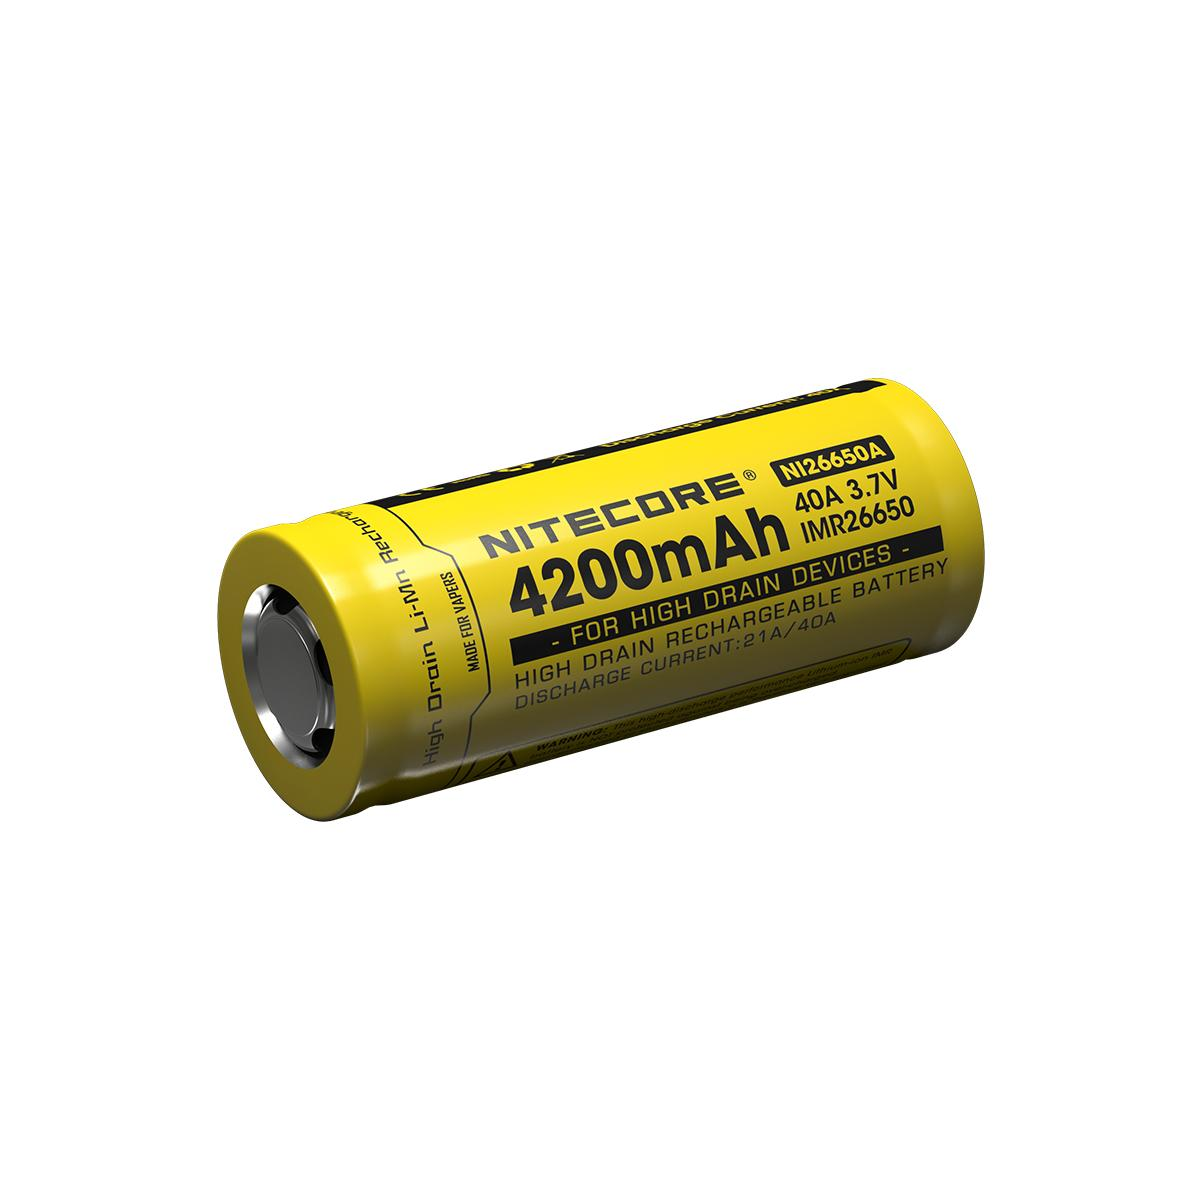 Nitecore 26650 4200mAh 3.7V IMR 40A Flat Top Cell Rechargeable Battery for High Drain Devices